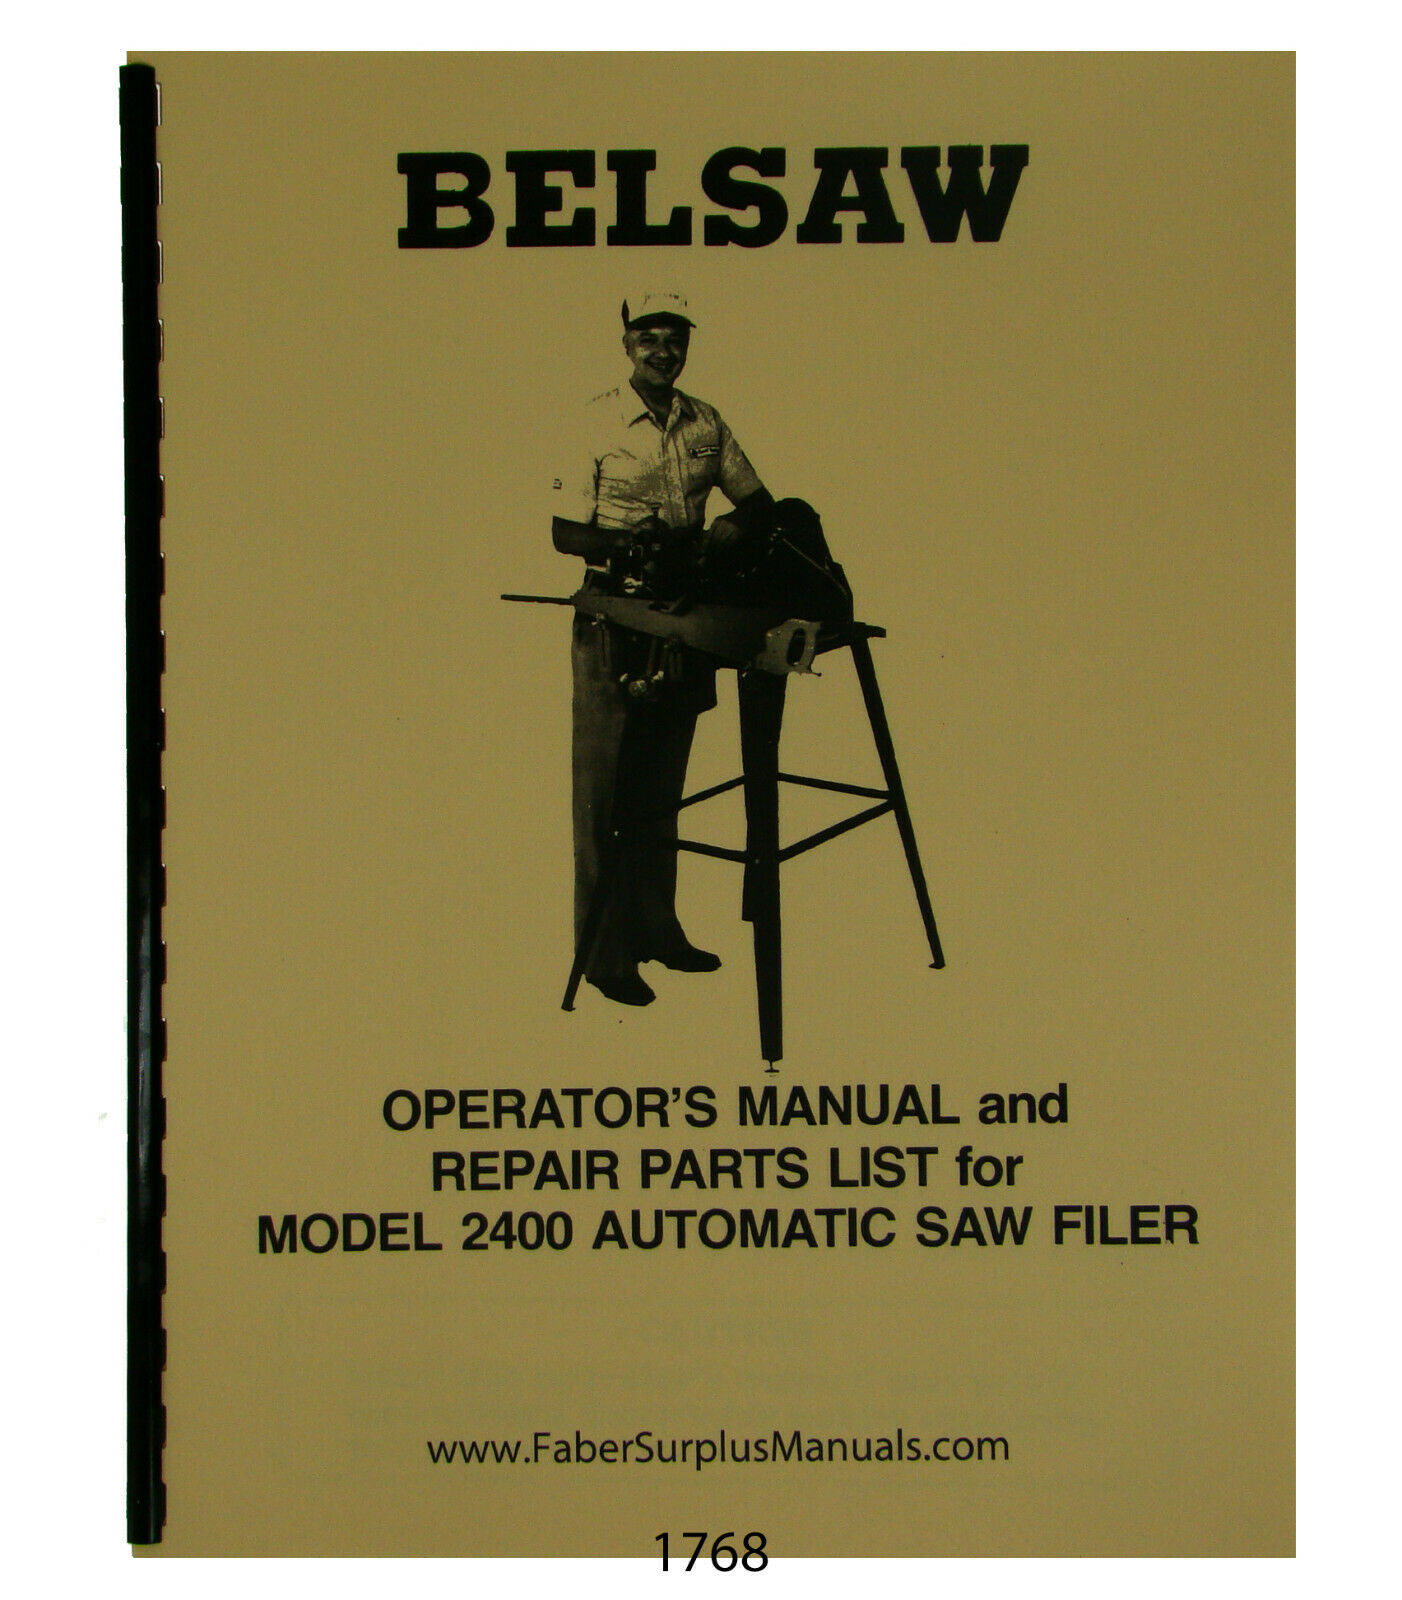 Foley Belsaw 2400 Auto Saw Filer Operator and Parts Manual #1768